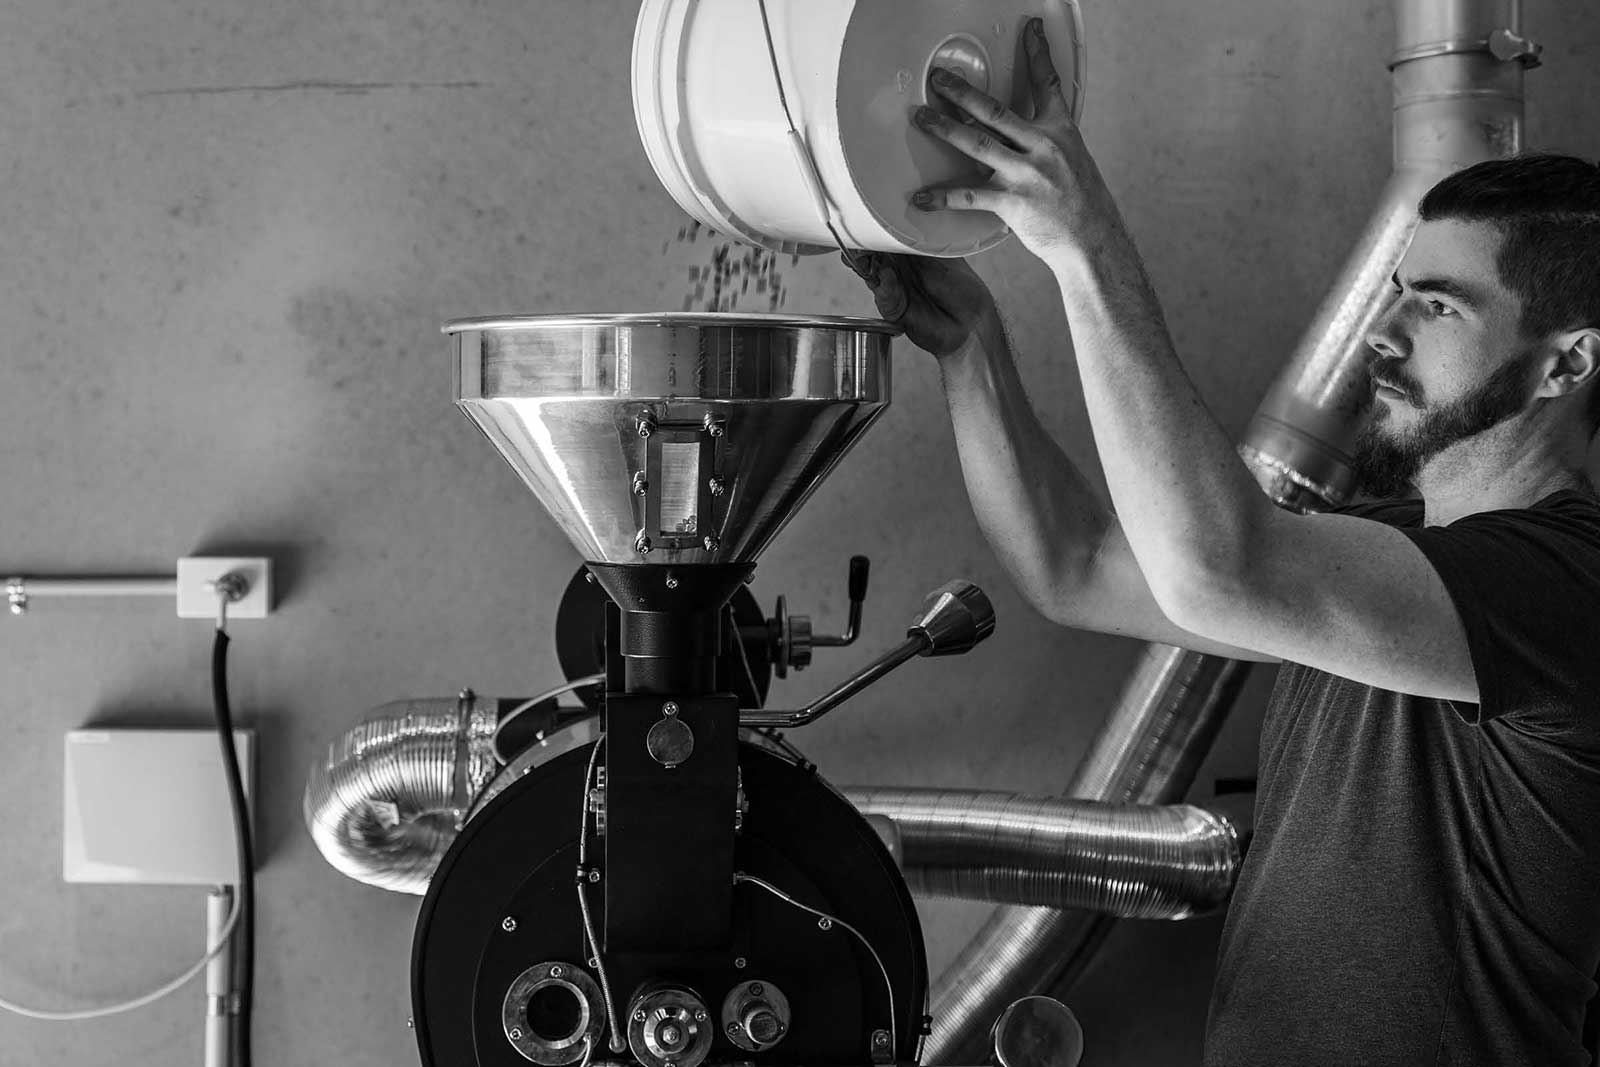 Rob Greer, Head Roaster of Grey Matter Coffee Roaster dropping some green beans into the roaster.